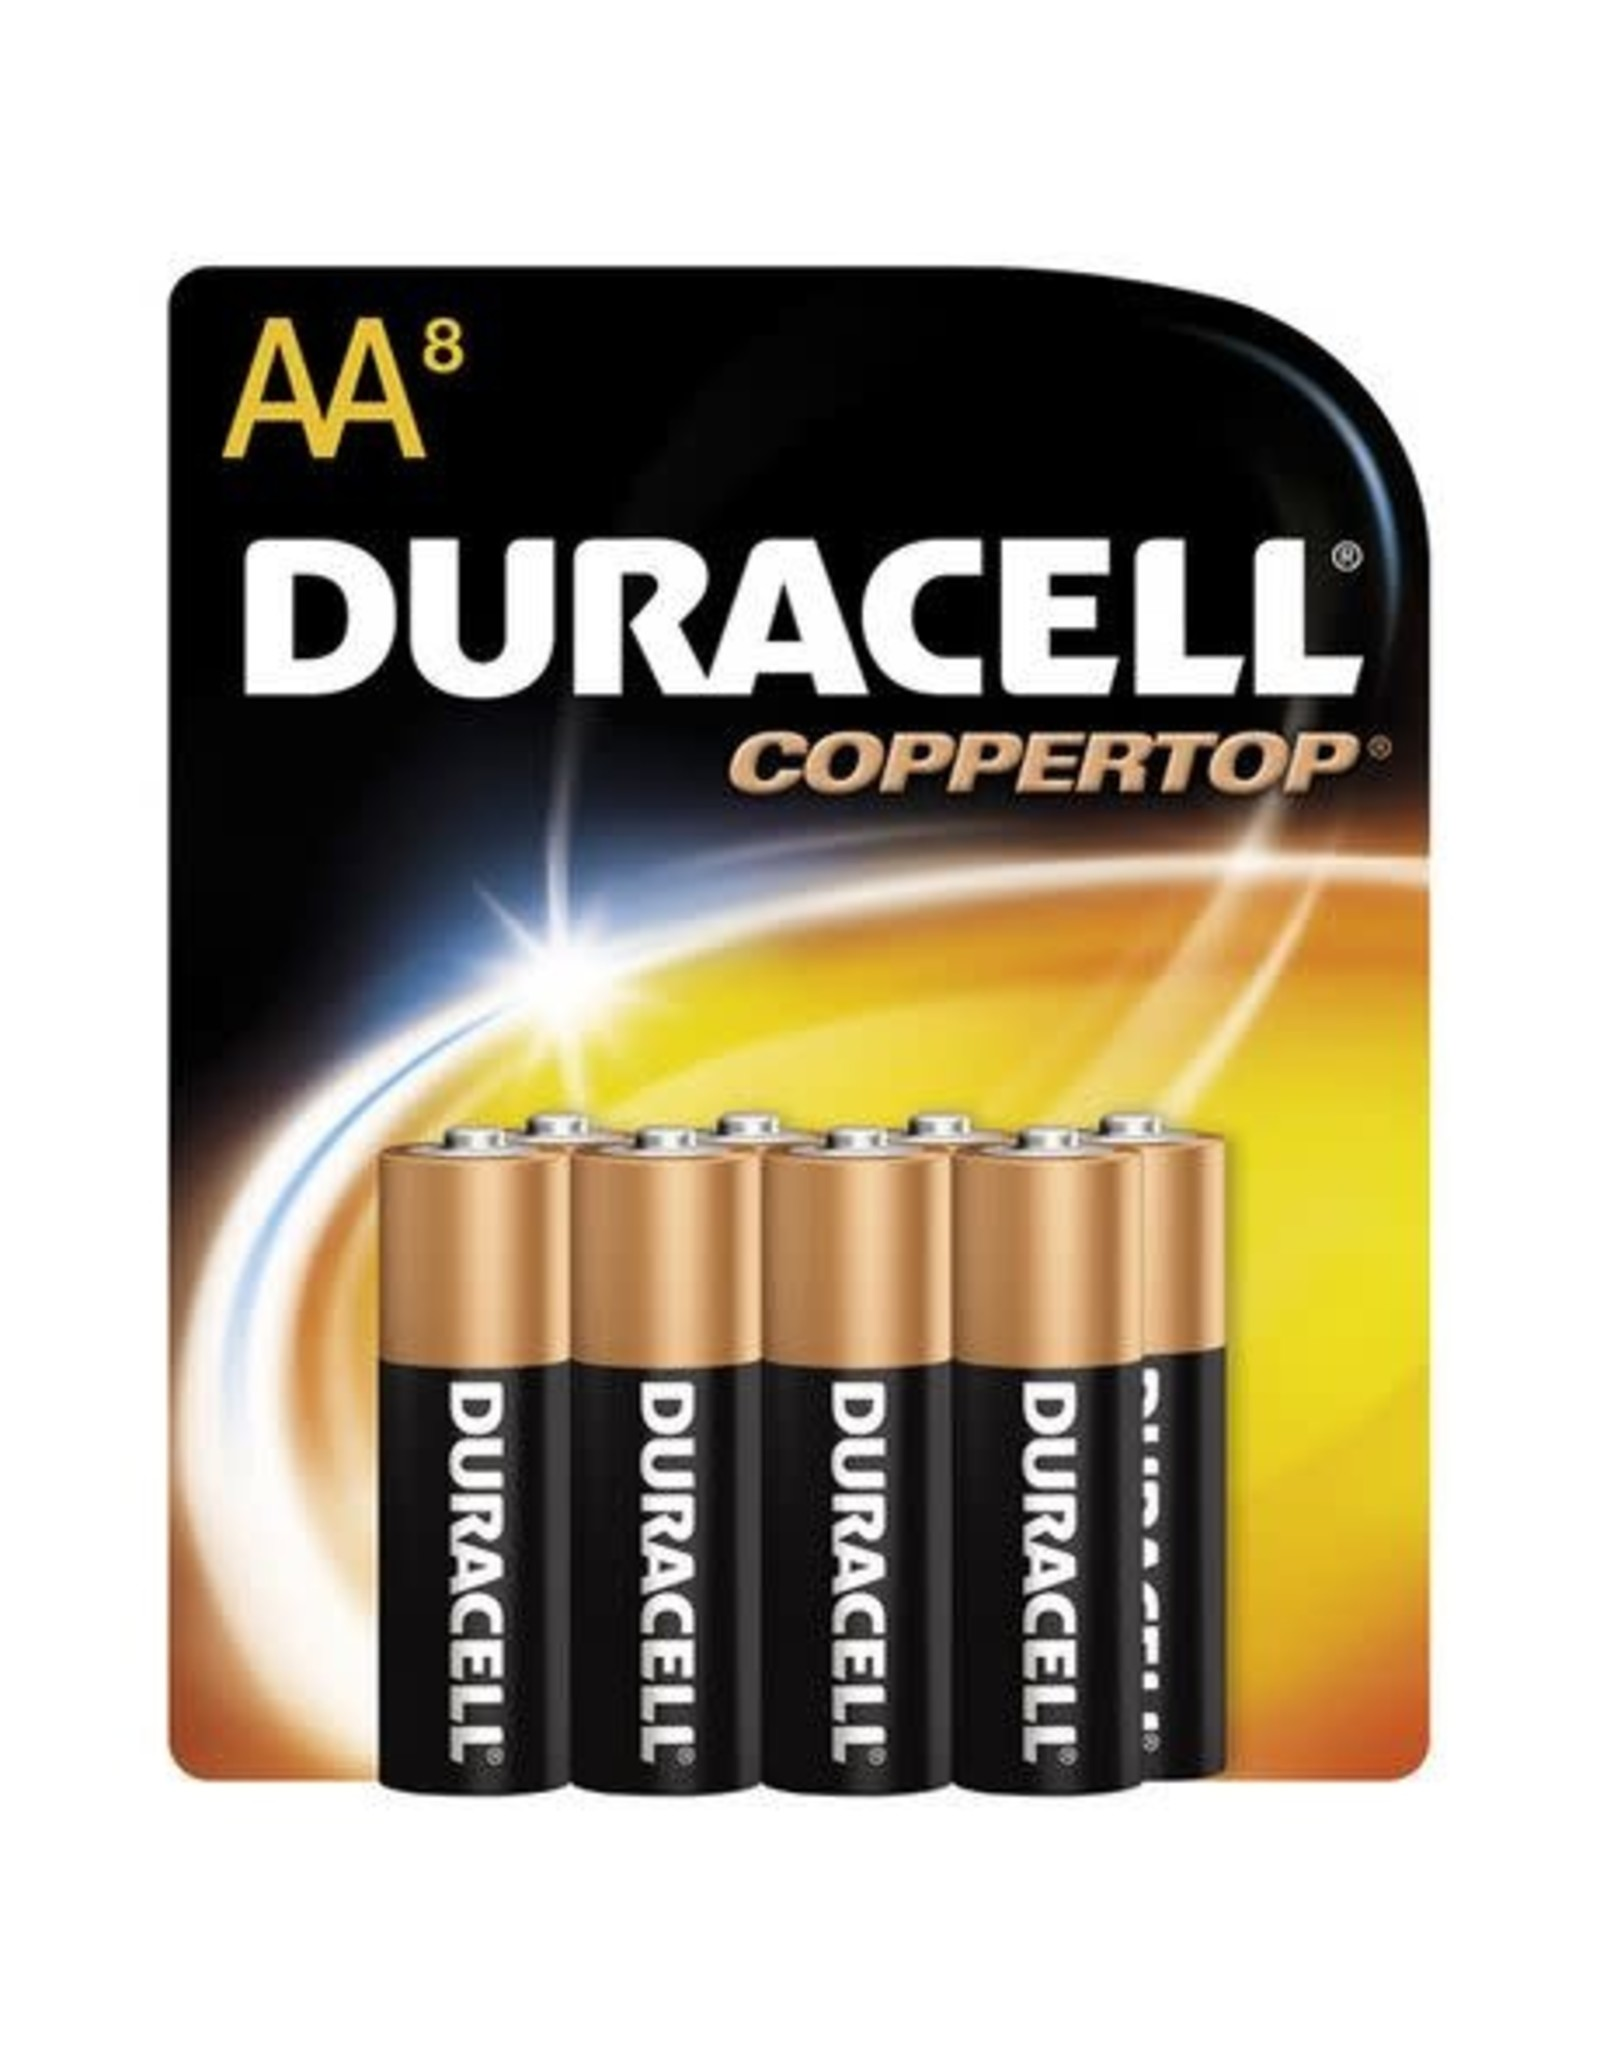 Duracell Duracell Coppertop AA 8-Pack